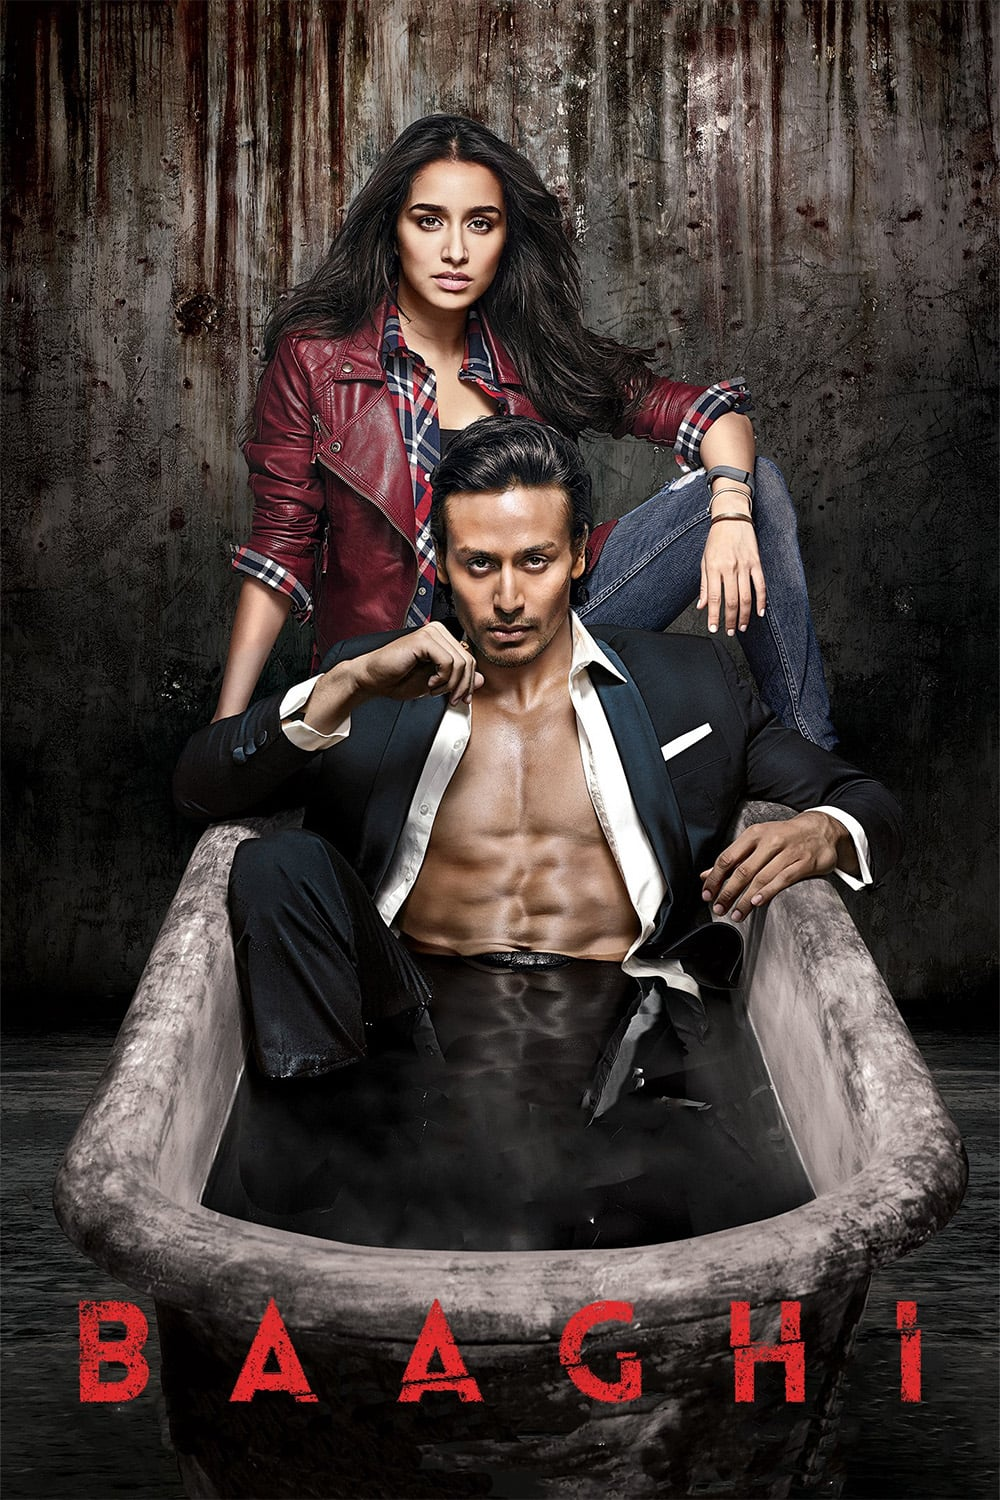 Watch Baaghi Full Movie Download